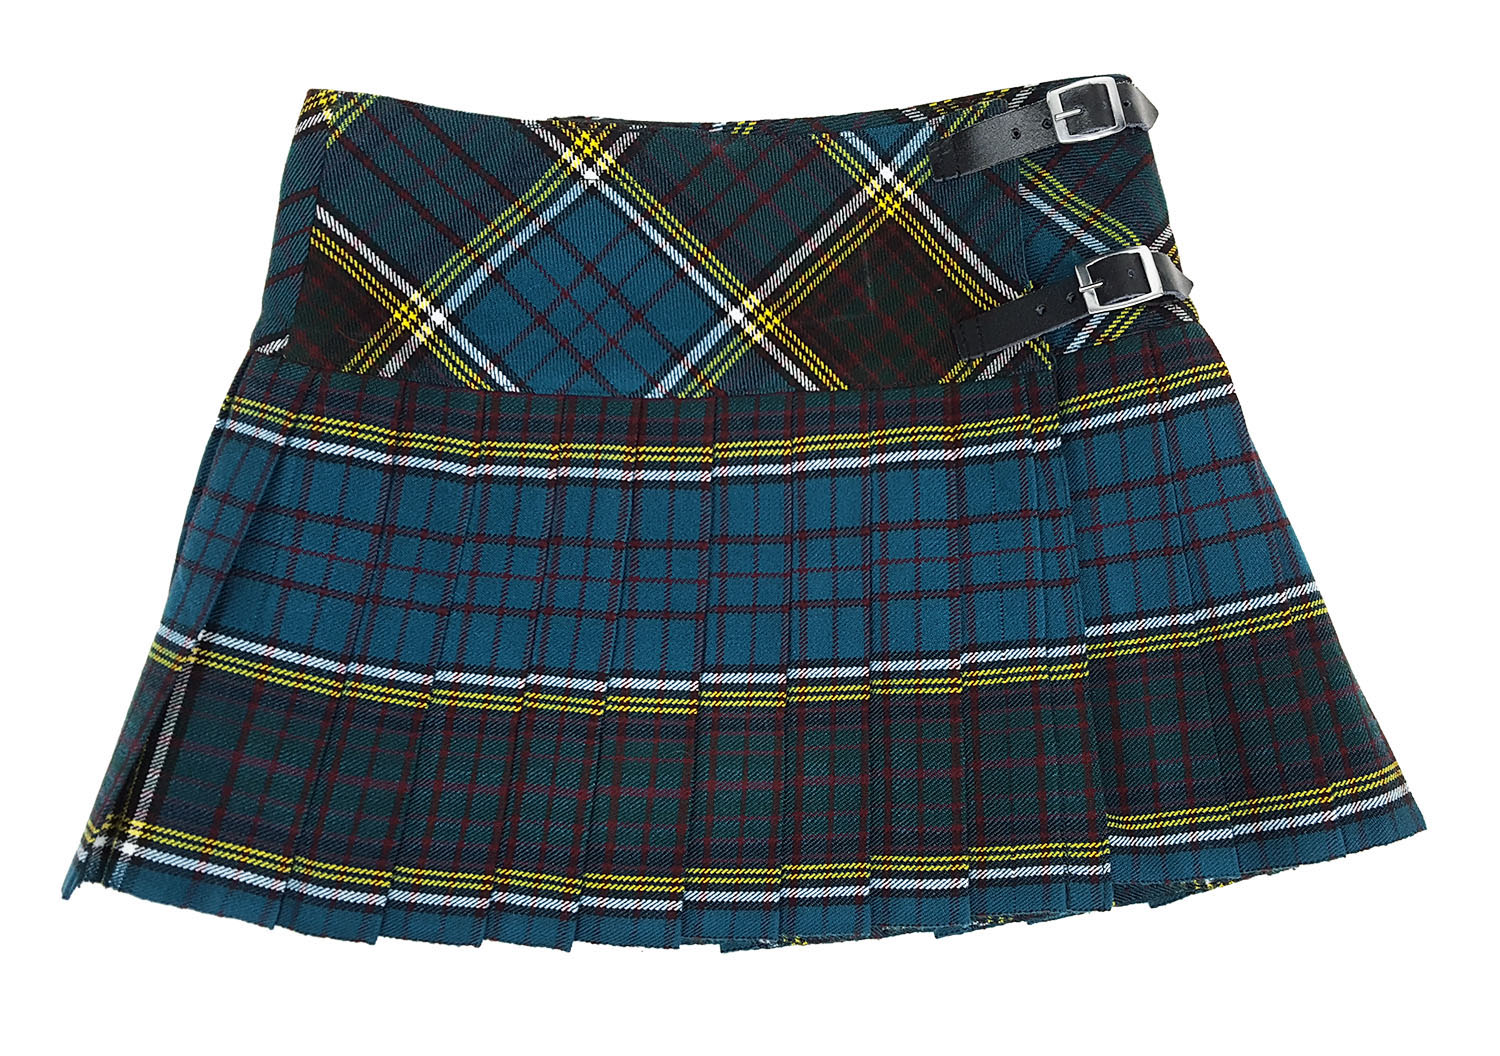 Anderson Homespun Kilted Mini Skirt